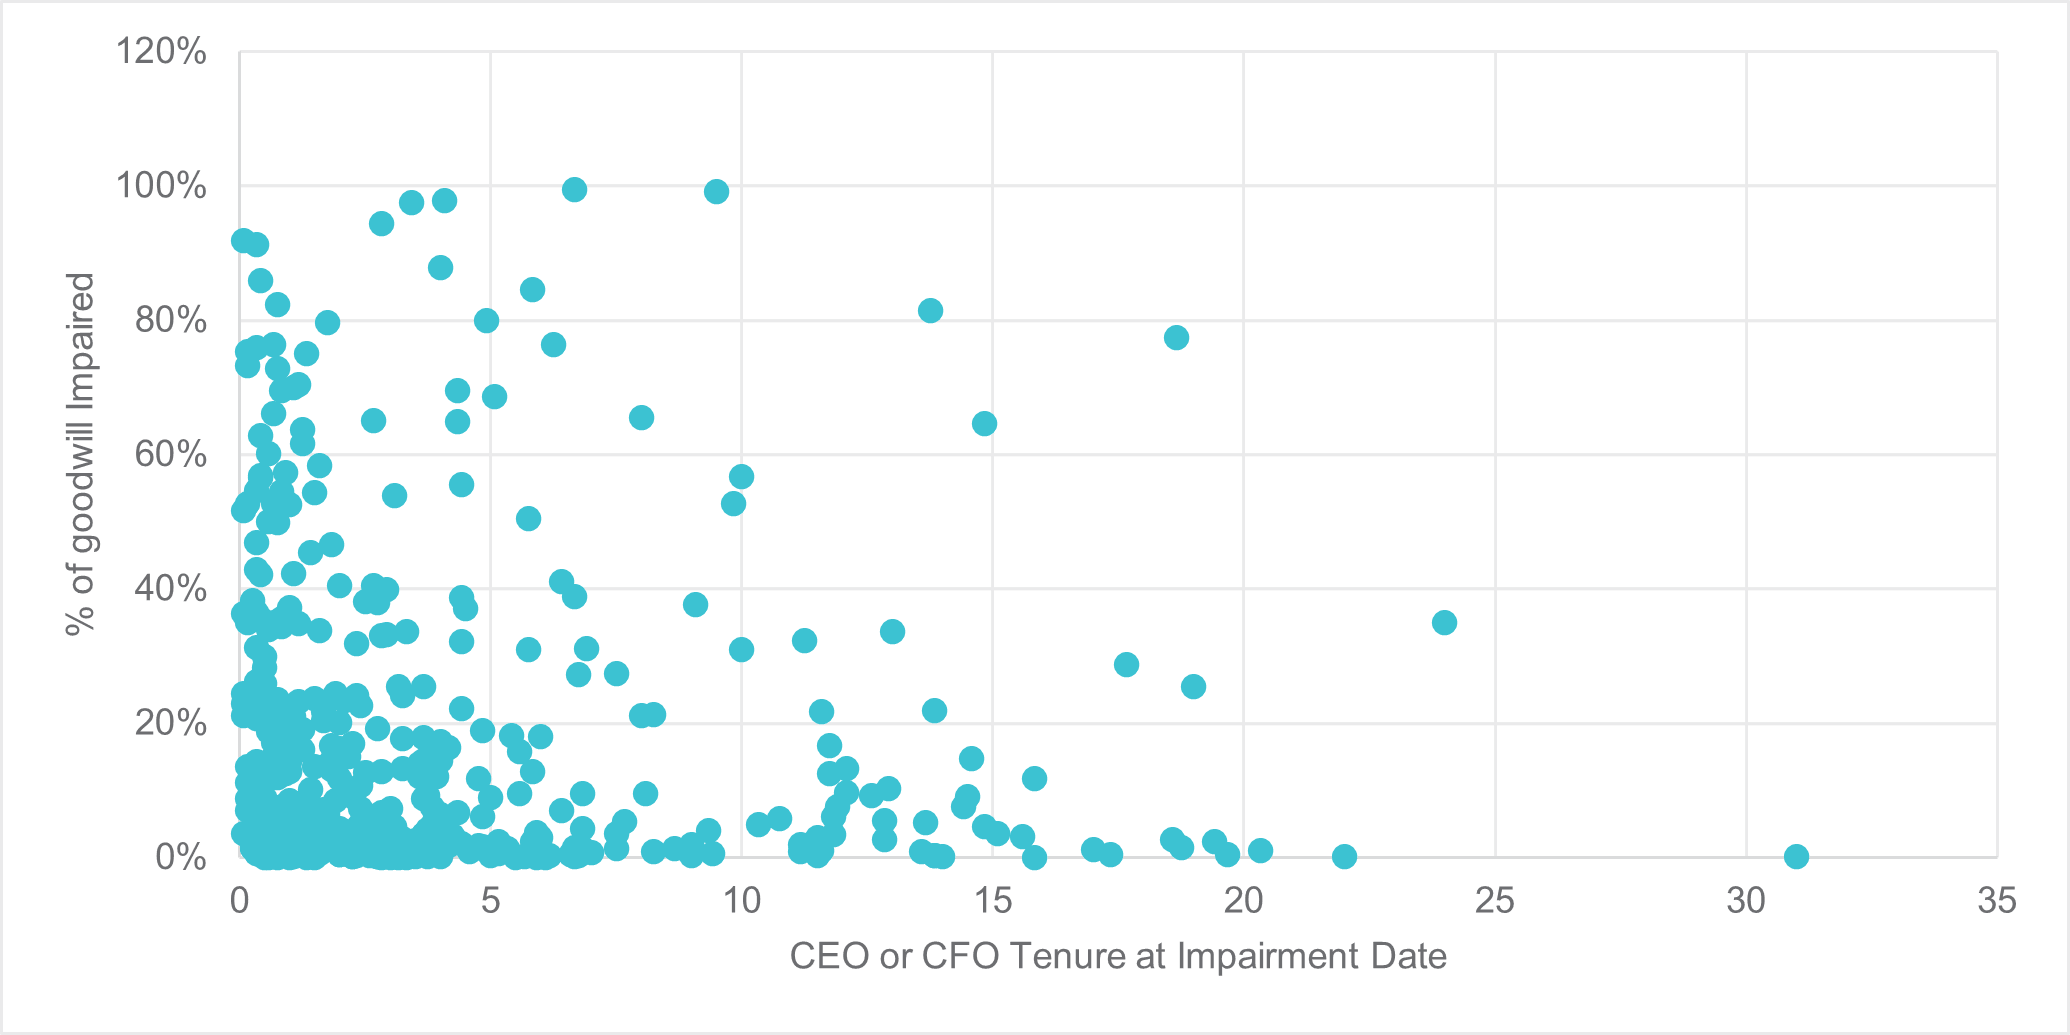 Intangible Assets: Impairment Significance versus CEO or CFO Tenure